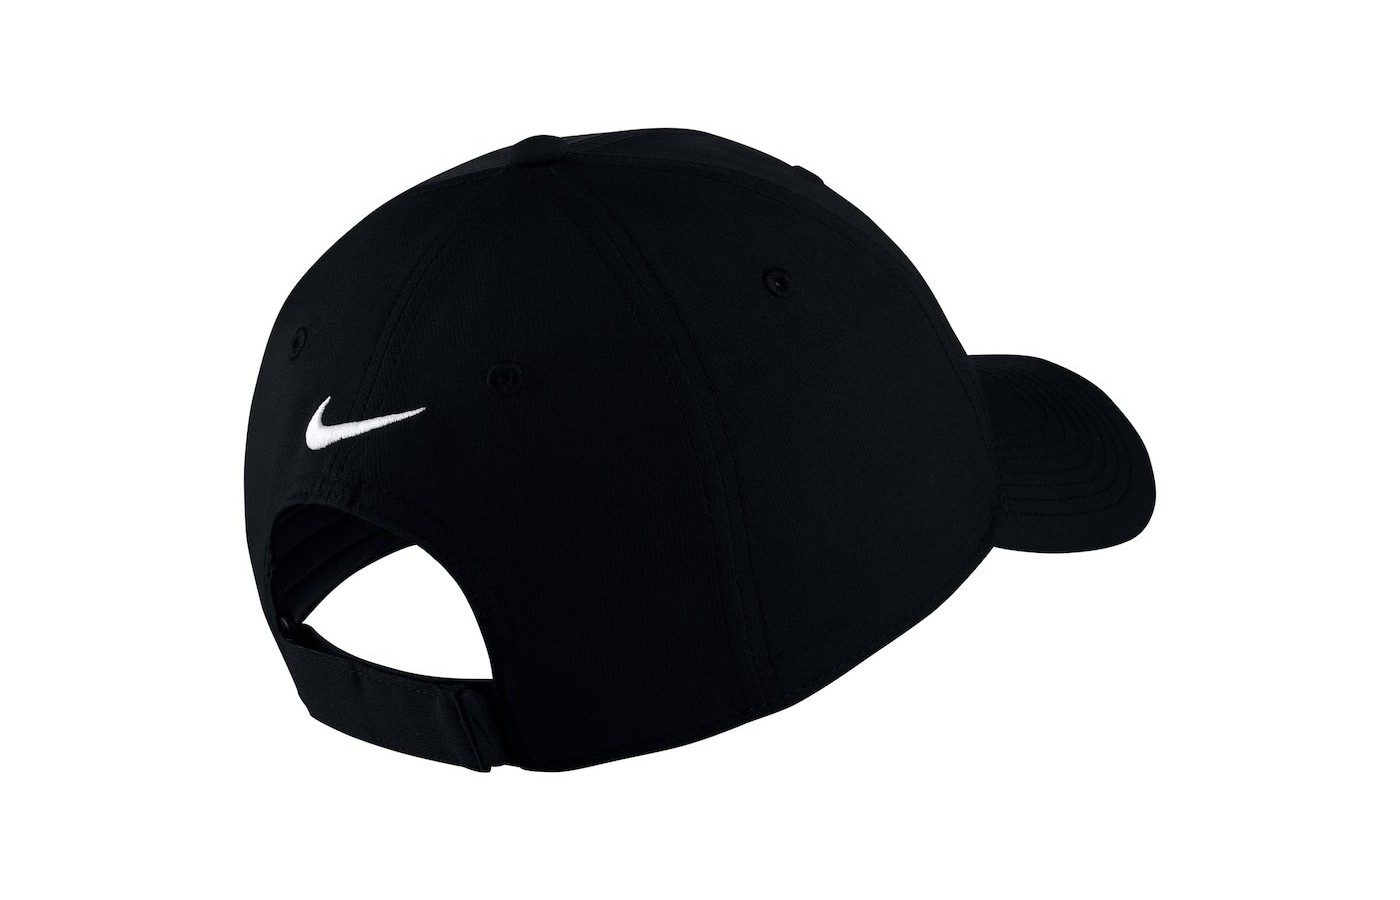 Nike Golf Dri-FIT black back